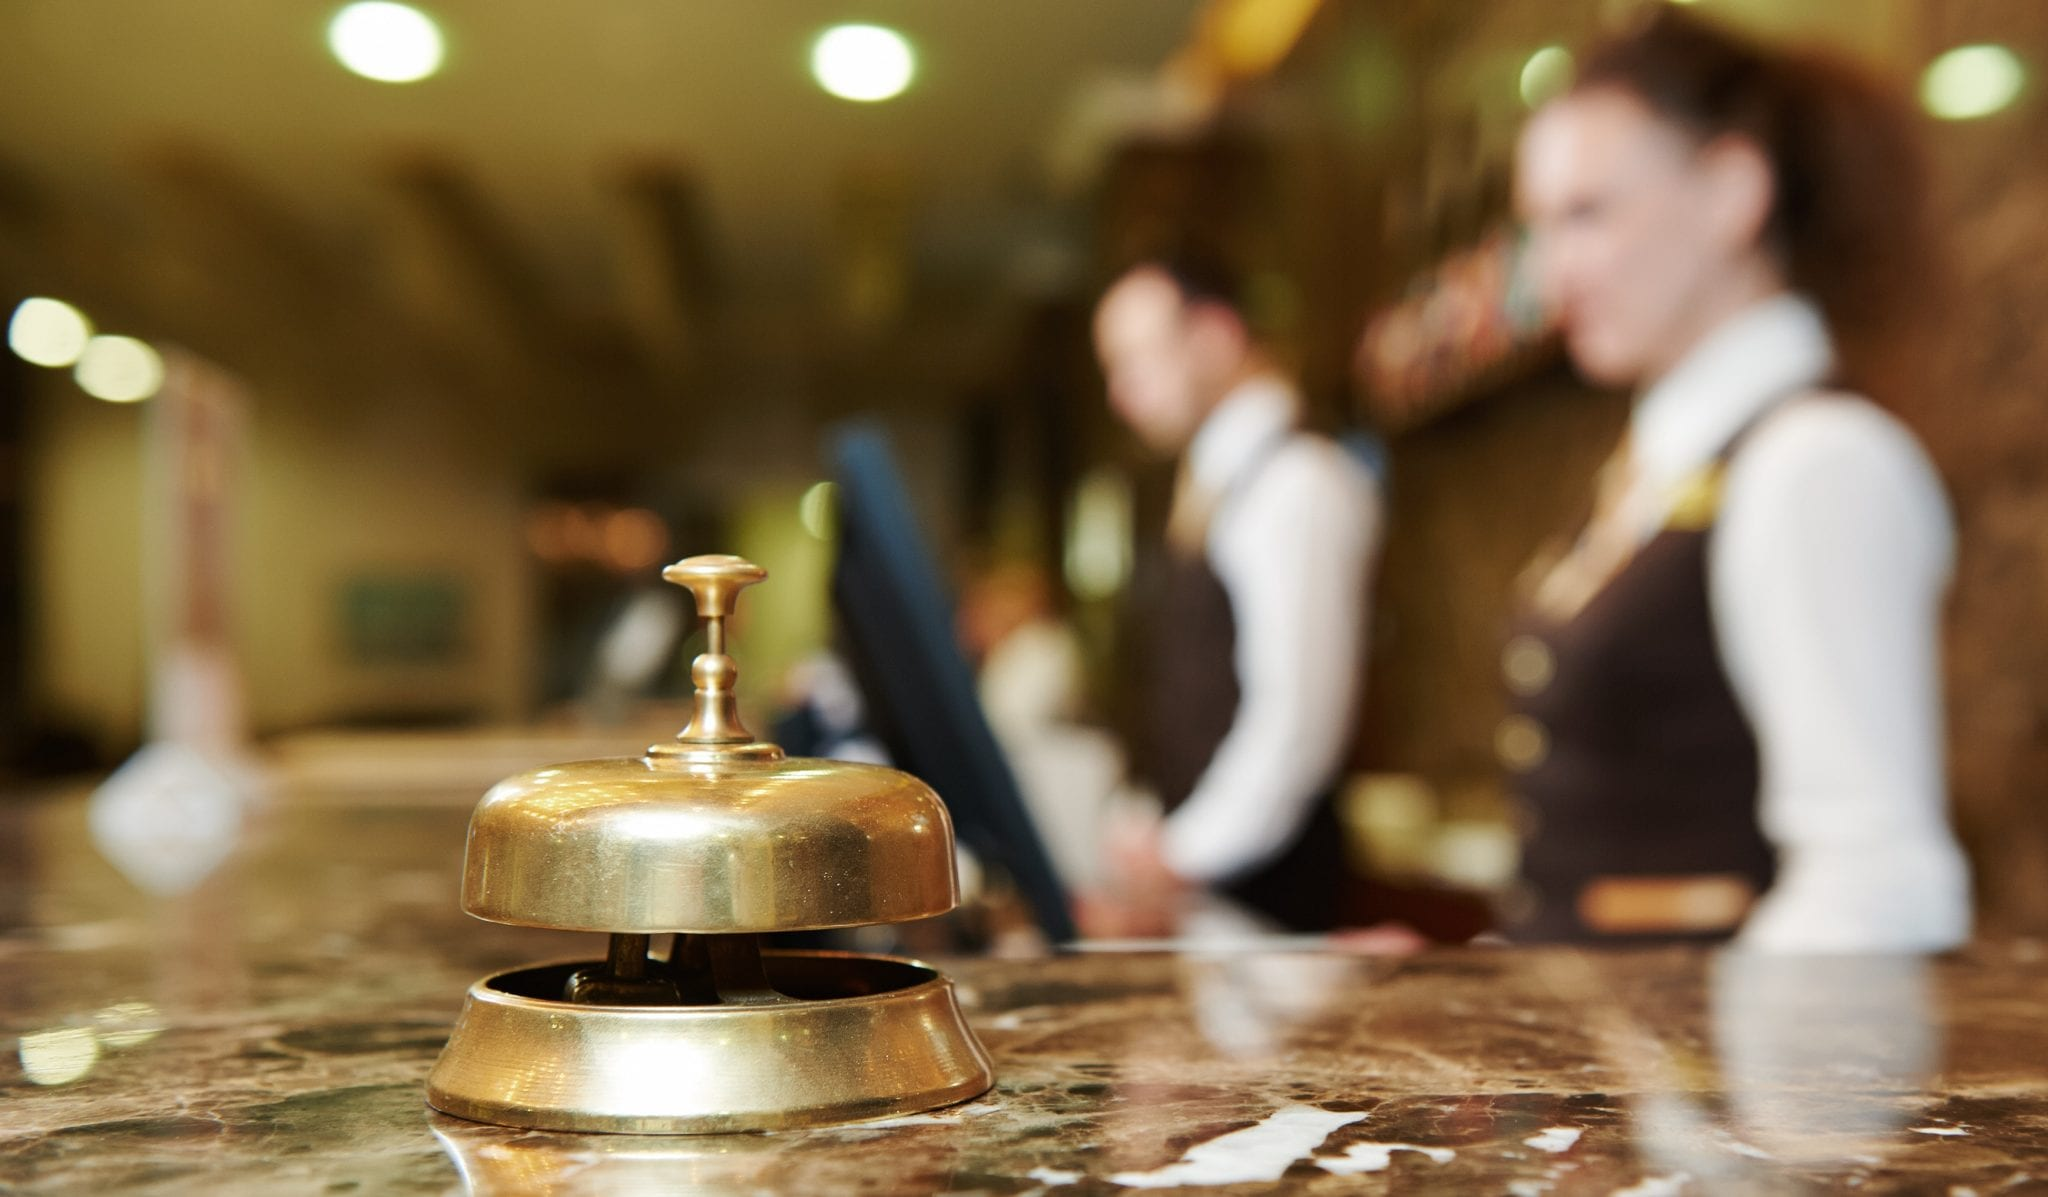 Hospitality sector remains resilient as insolvency risk levels fall